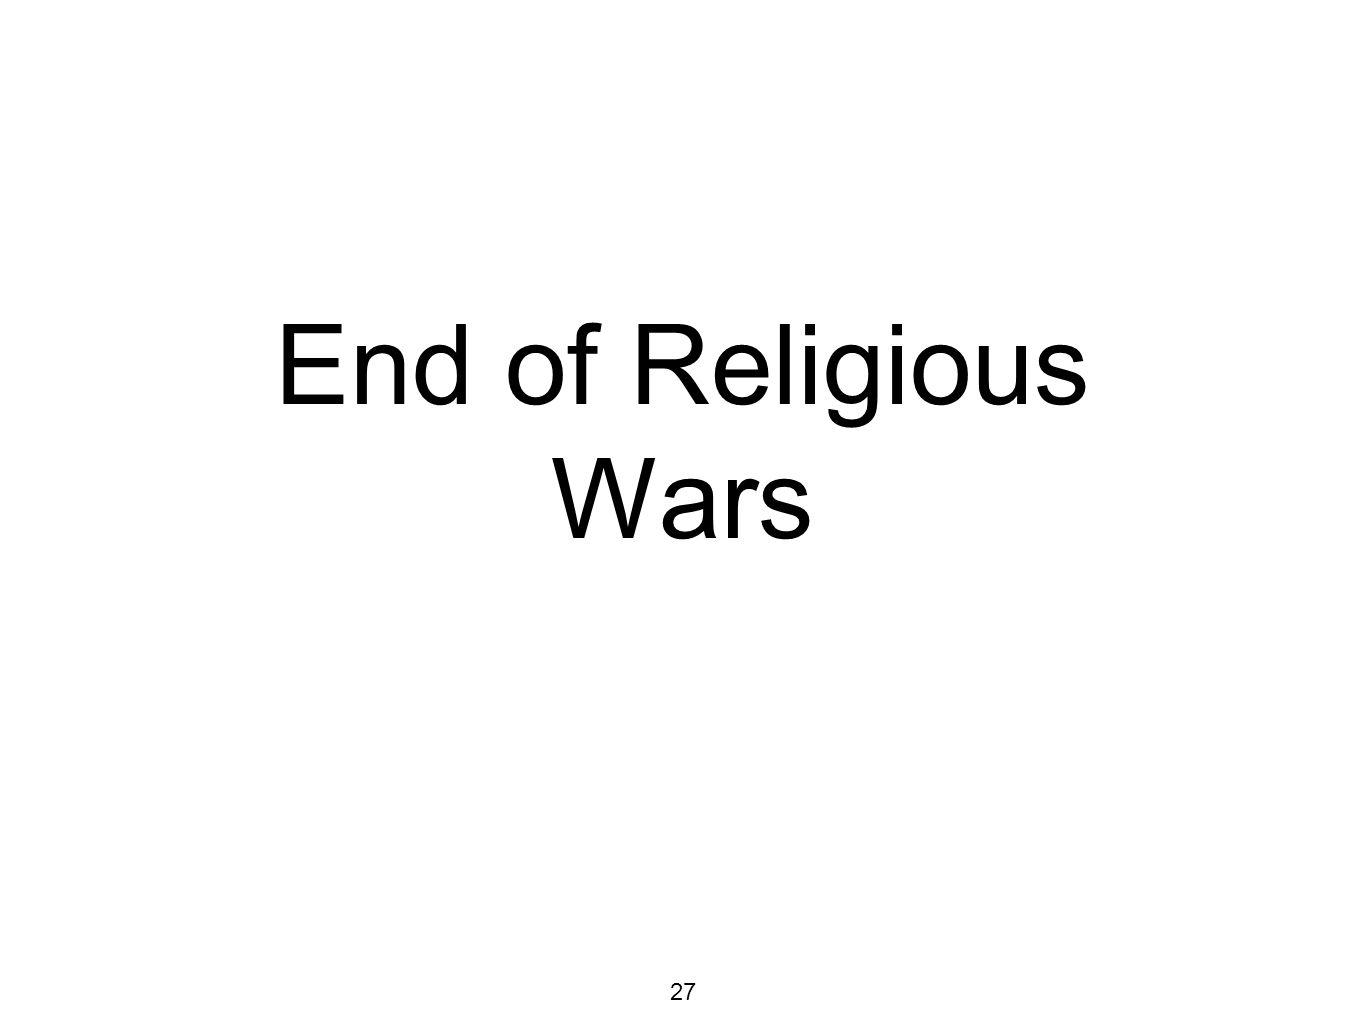 End of Religious Wars